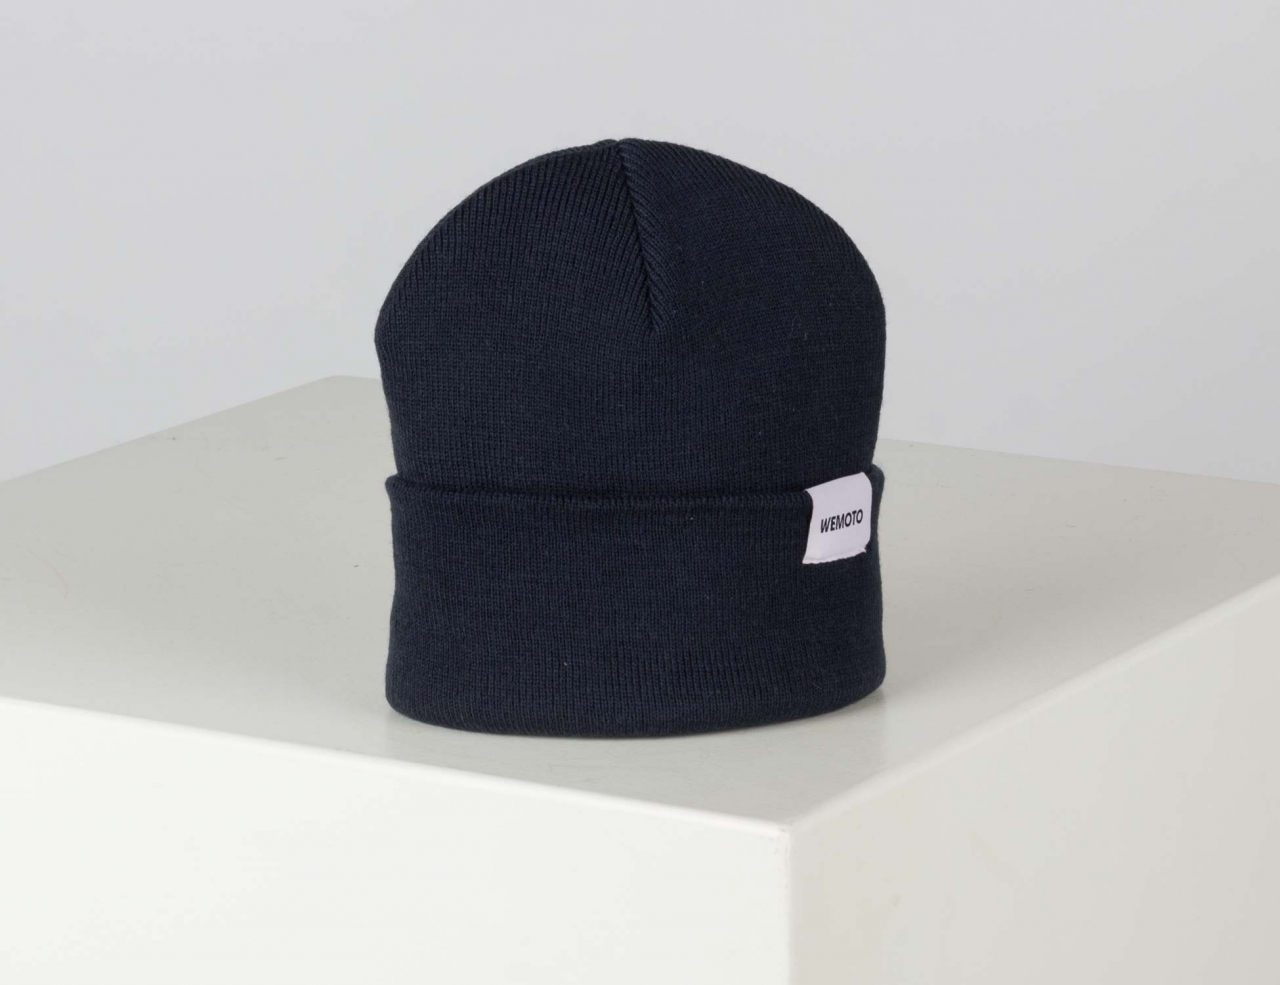 Wemoto North Beanie - Navy Blue